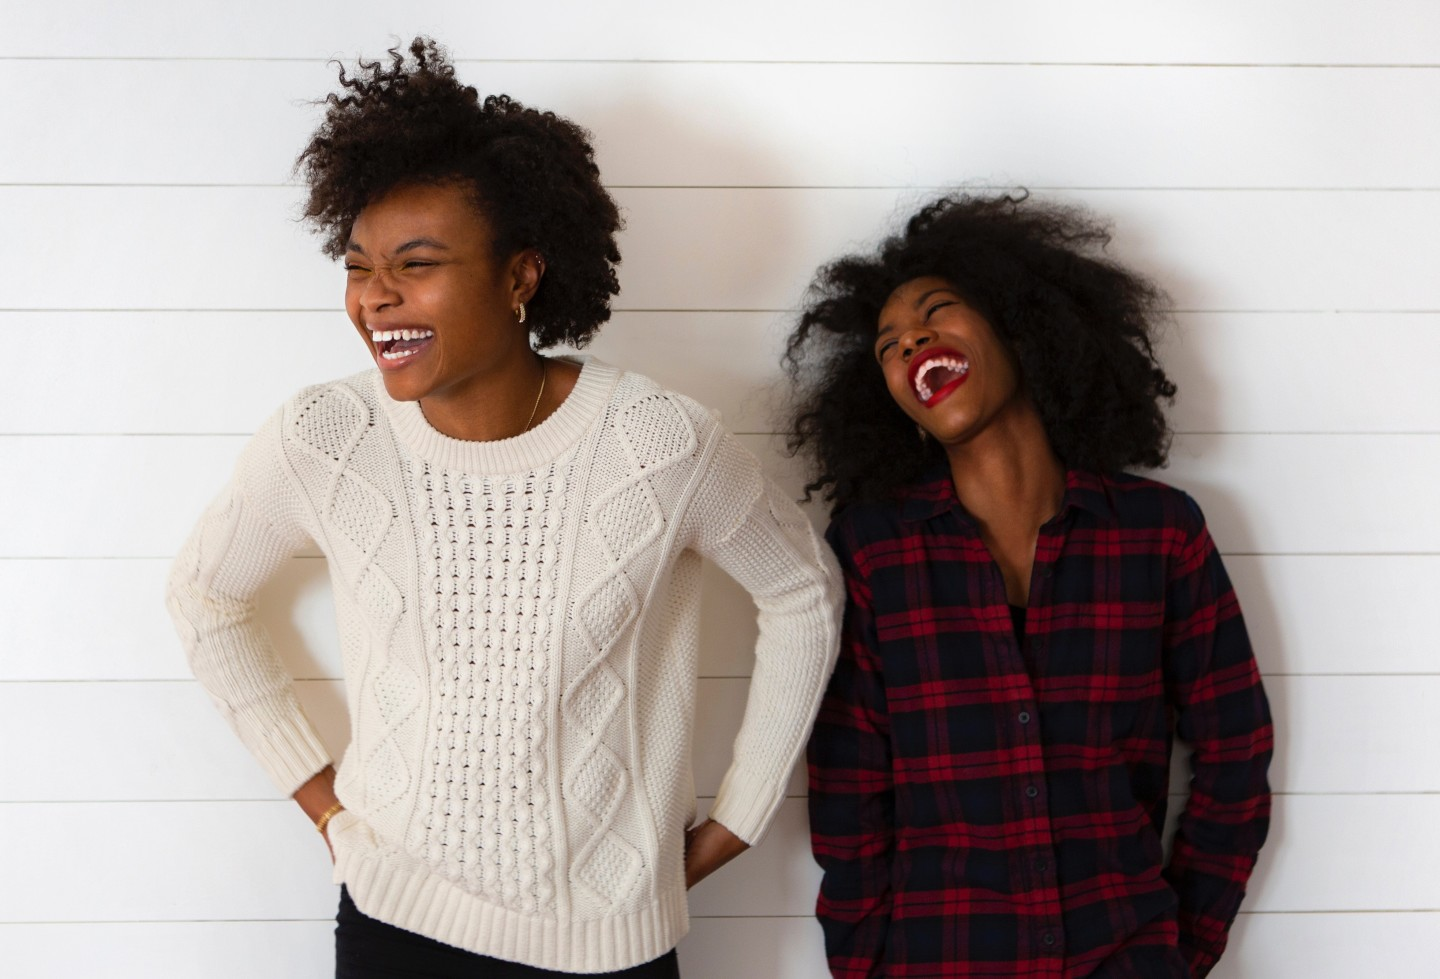 women-laughing-against-white-wall